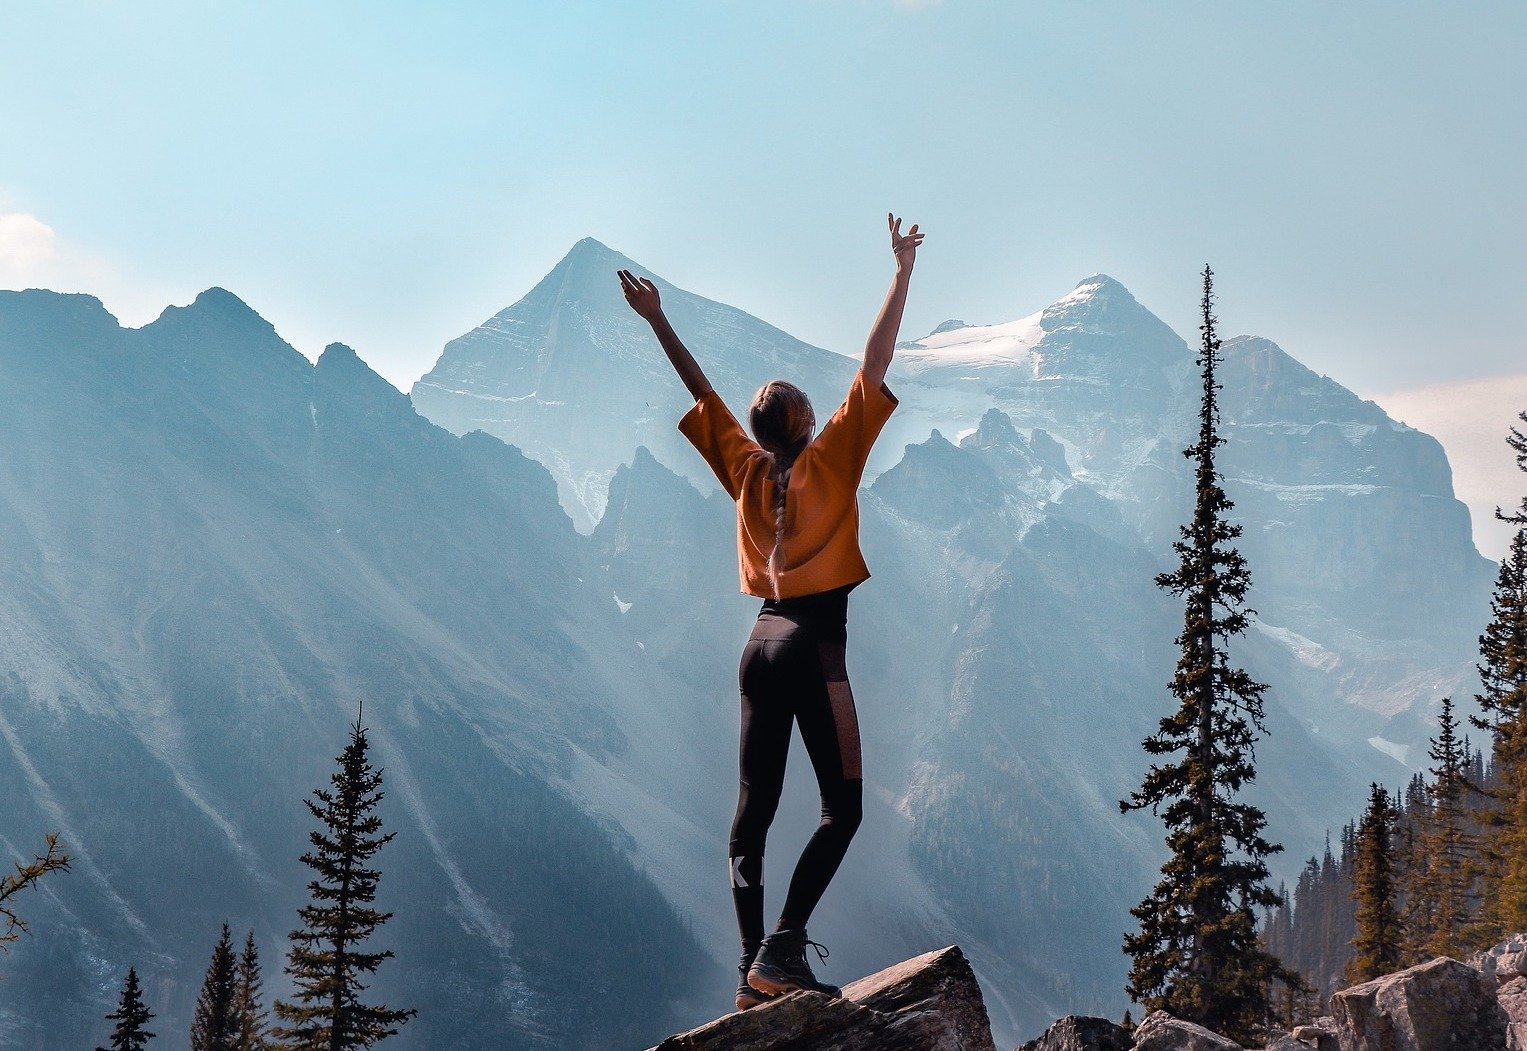 Girl celebrates reaching the highest part of a mountain